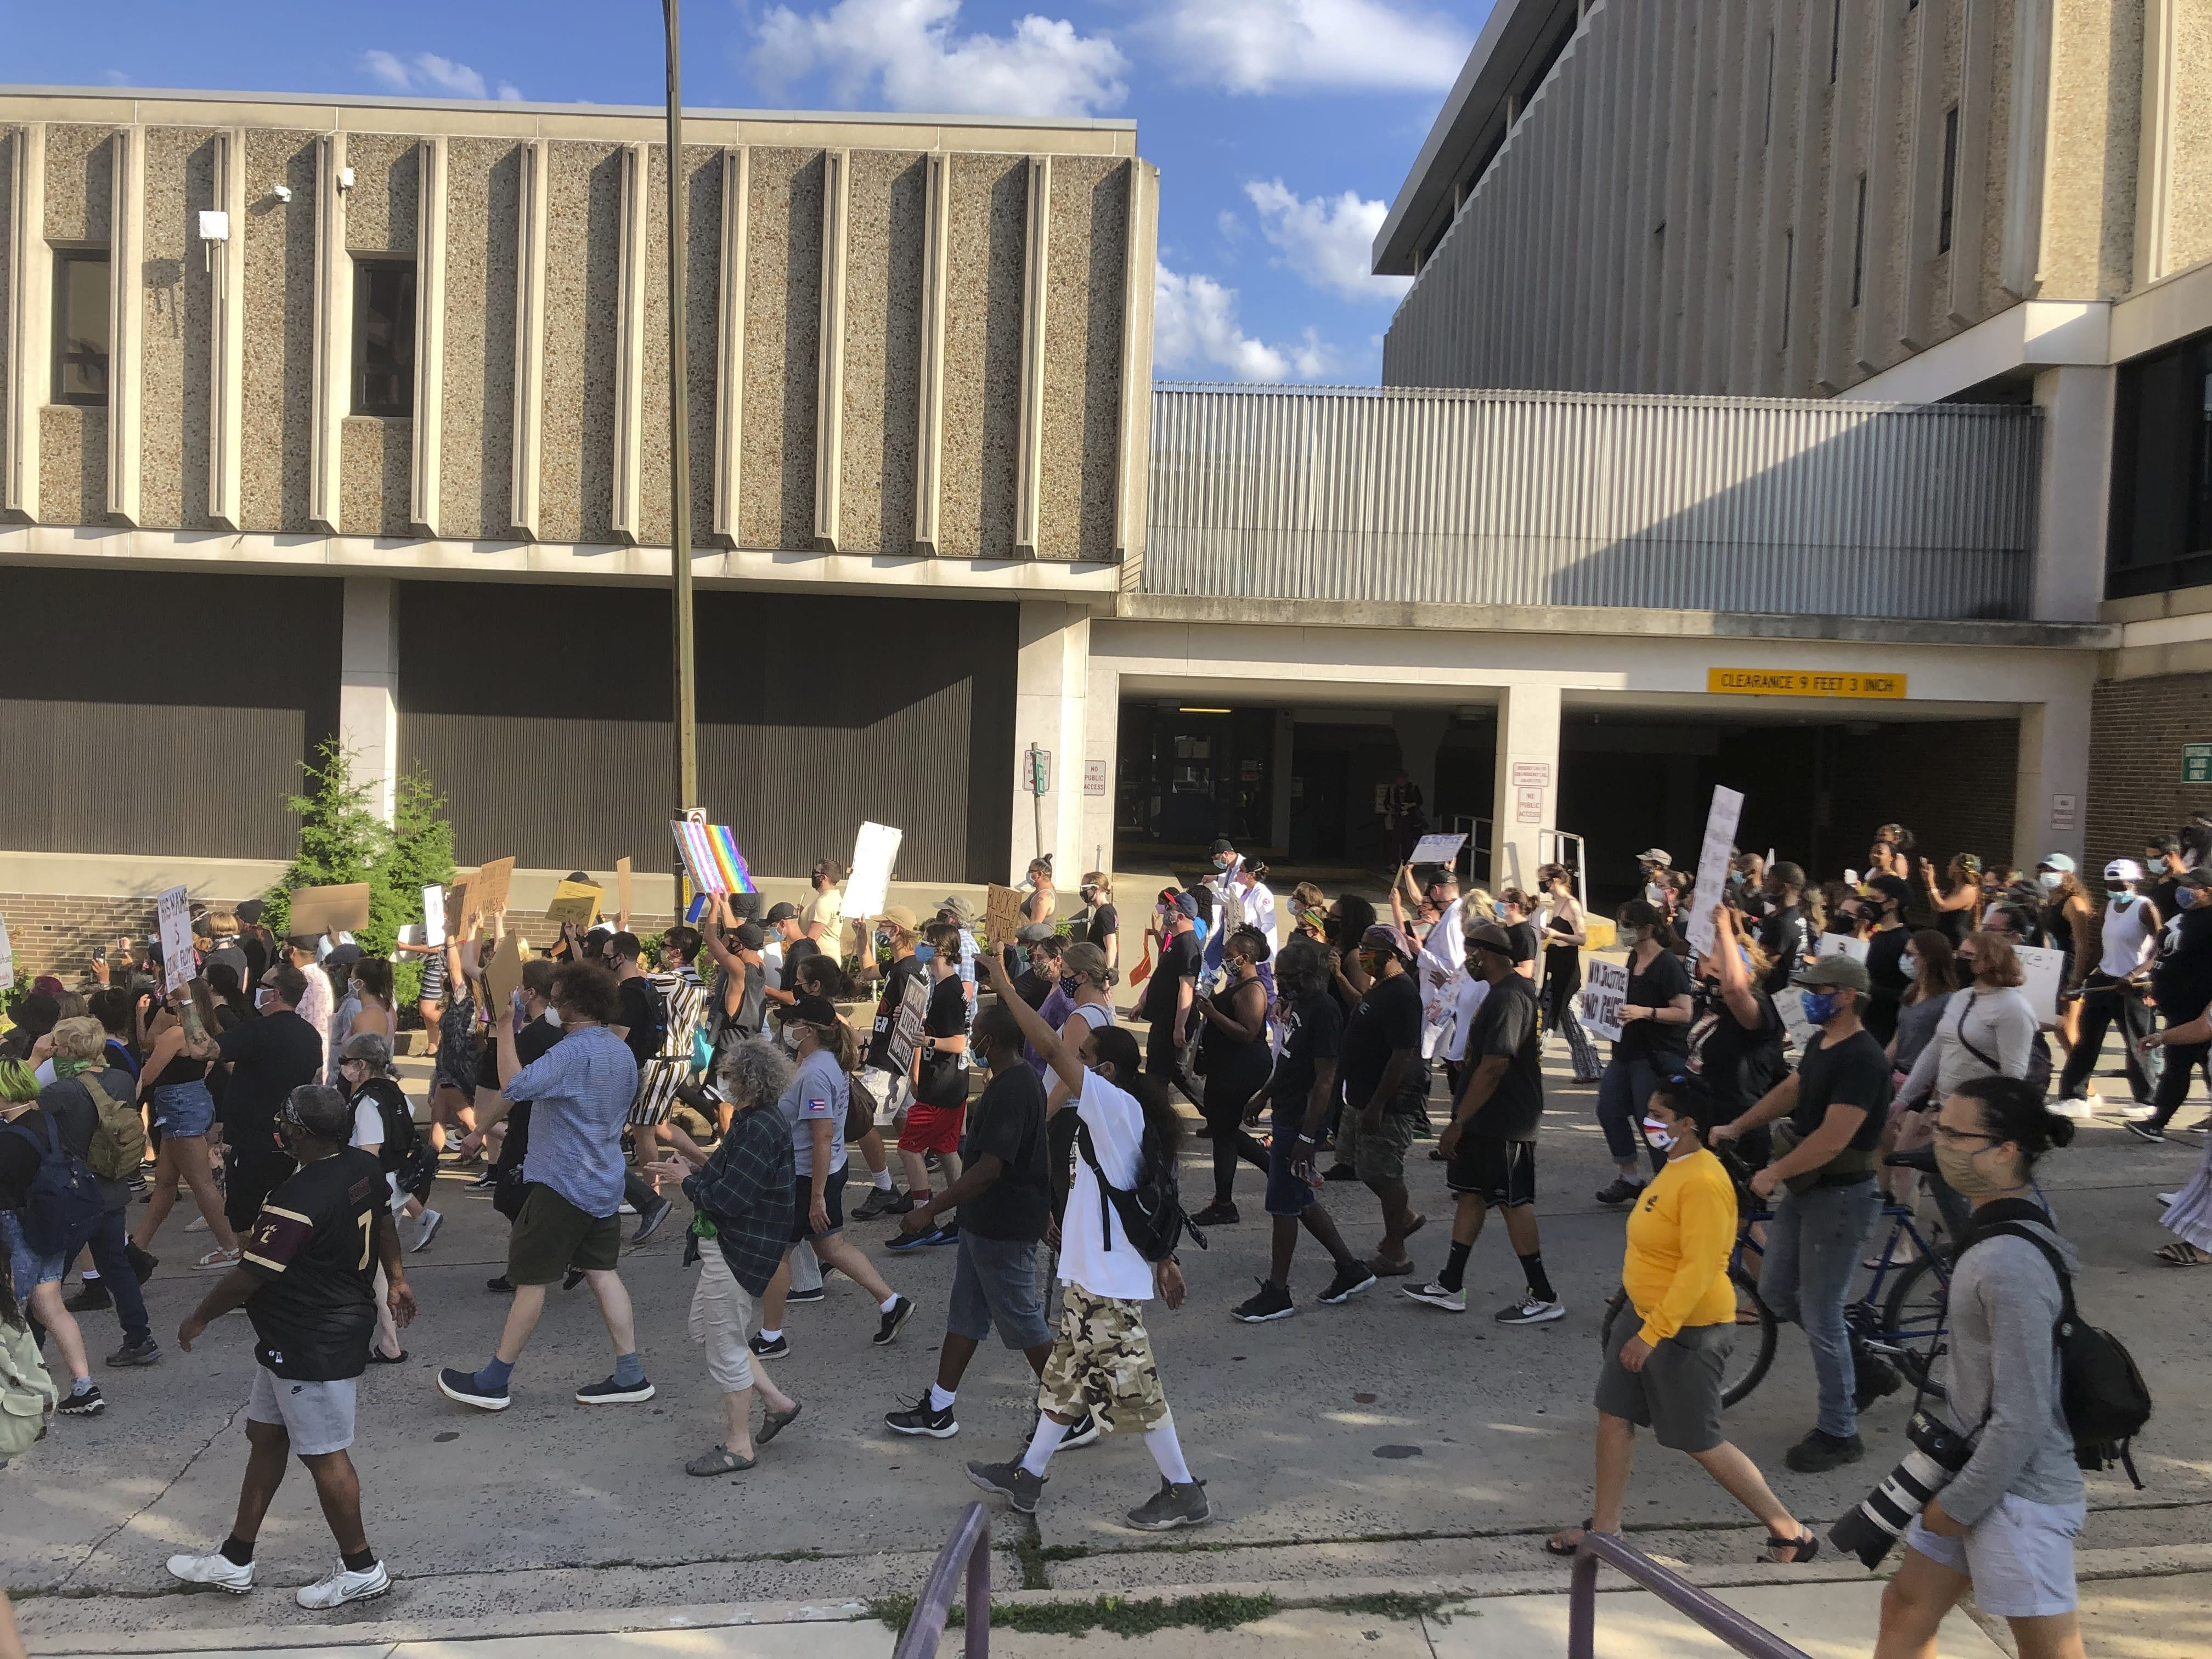 Protesters march past the police department in Allentown, Pennsylvania, on Monday, July 13, 2020, to demand accountability from police after video emerged of an officer placing his knee on a man's head and neck area outside a hospital. Police have launched an internal probe. (AP Photo/Michael Rubinkam)